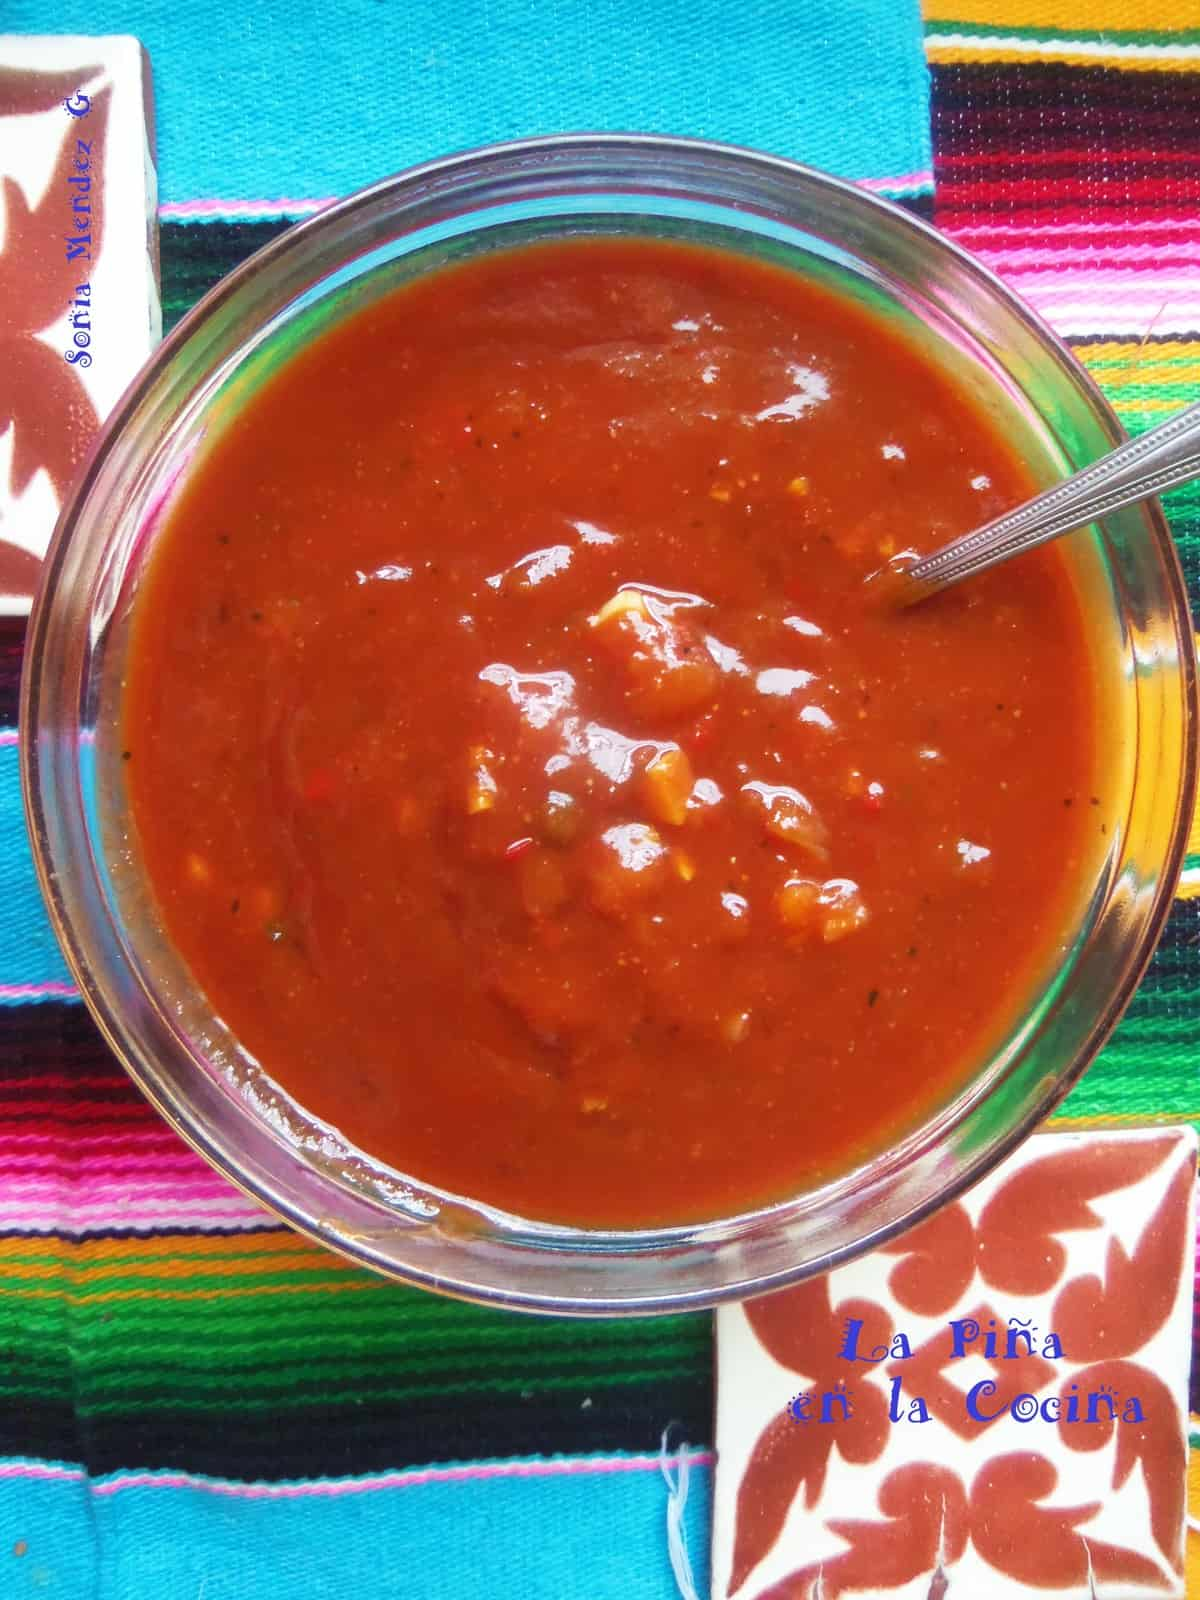 Spicy Mango Barbeque Sauce with Smoky Chipotles and Sweet Mango